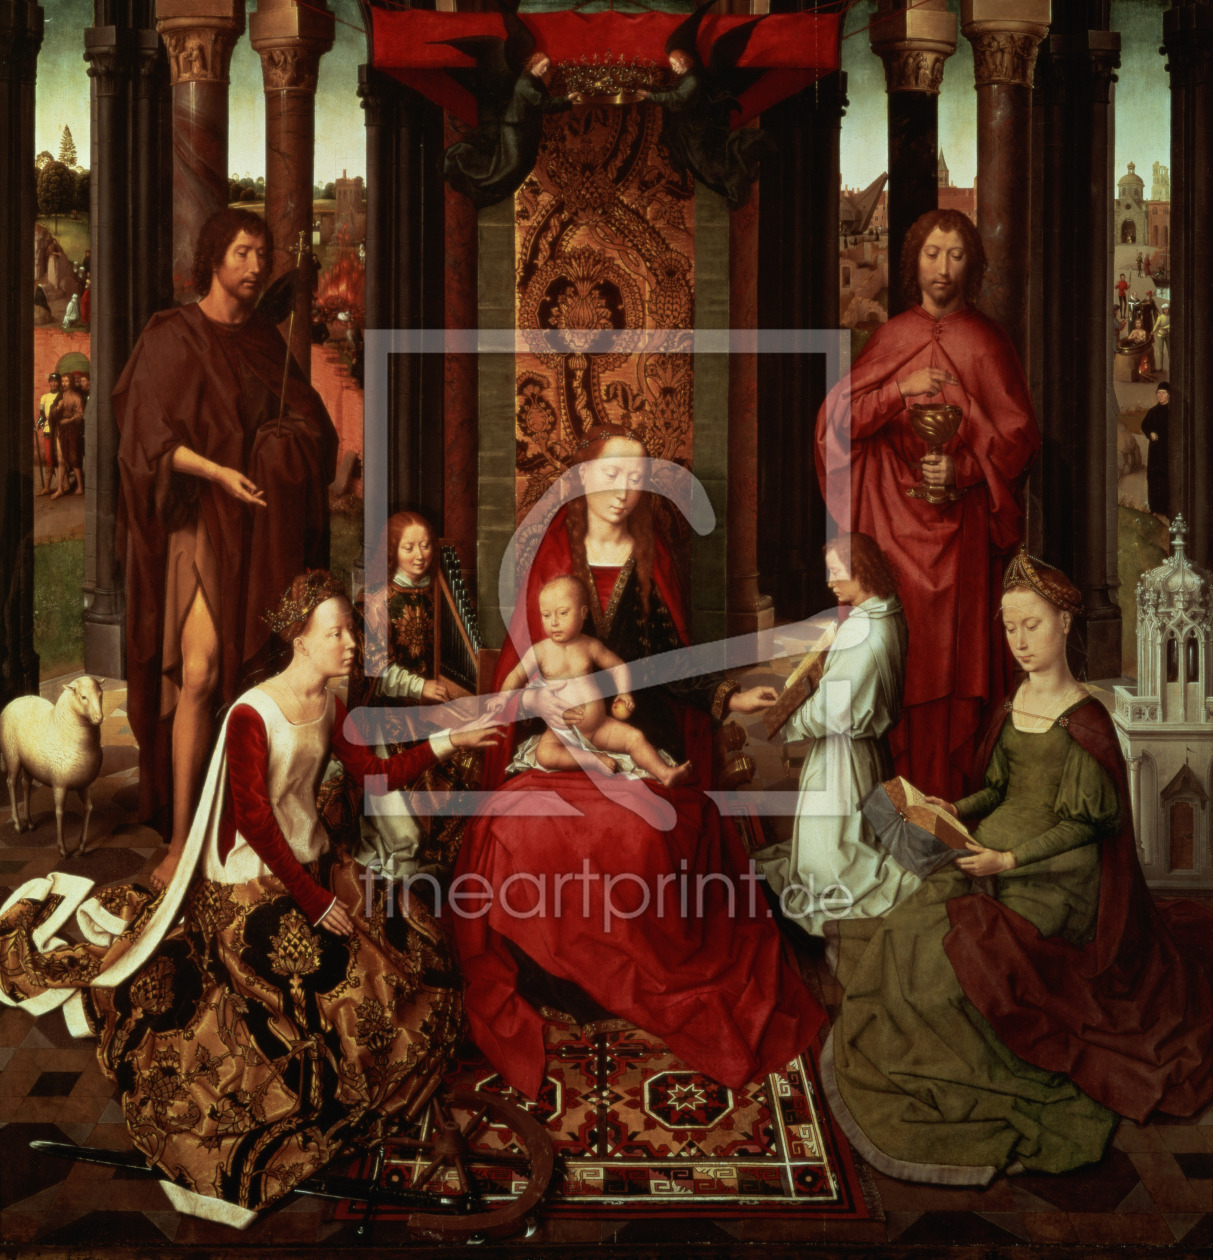 Bild-Nr.: 31002500 Mystic Marriage of St. Catherine and Other Saints erstellt von Memling, Hans